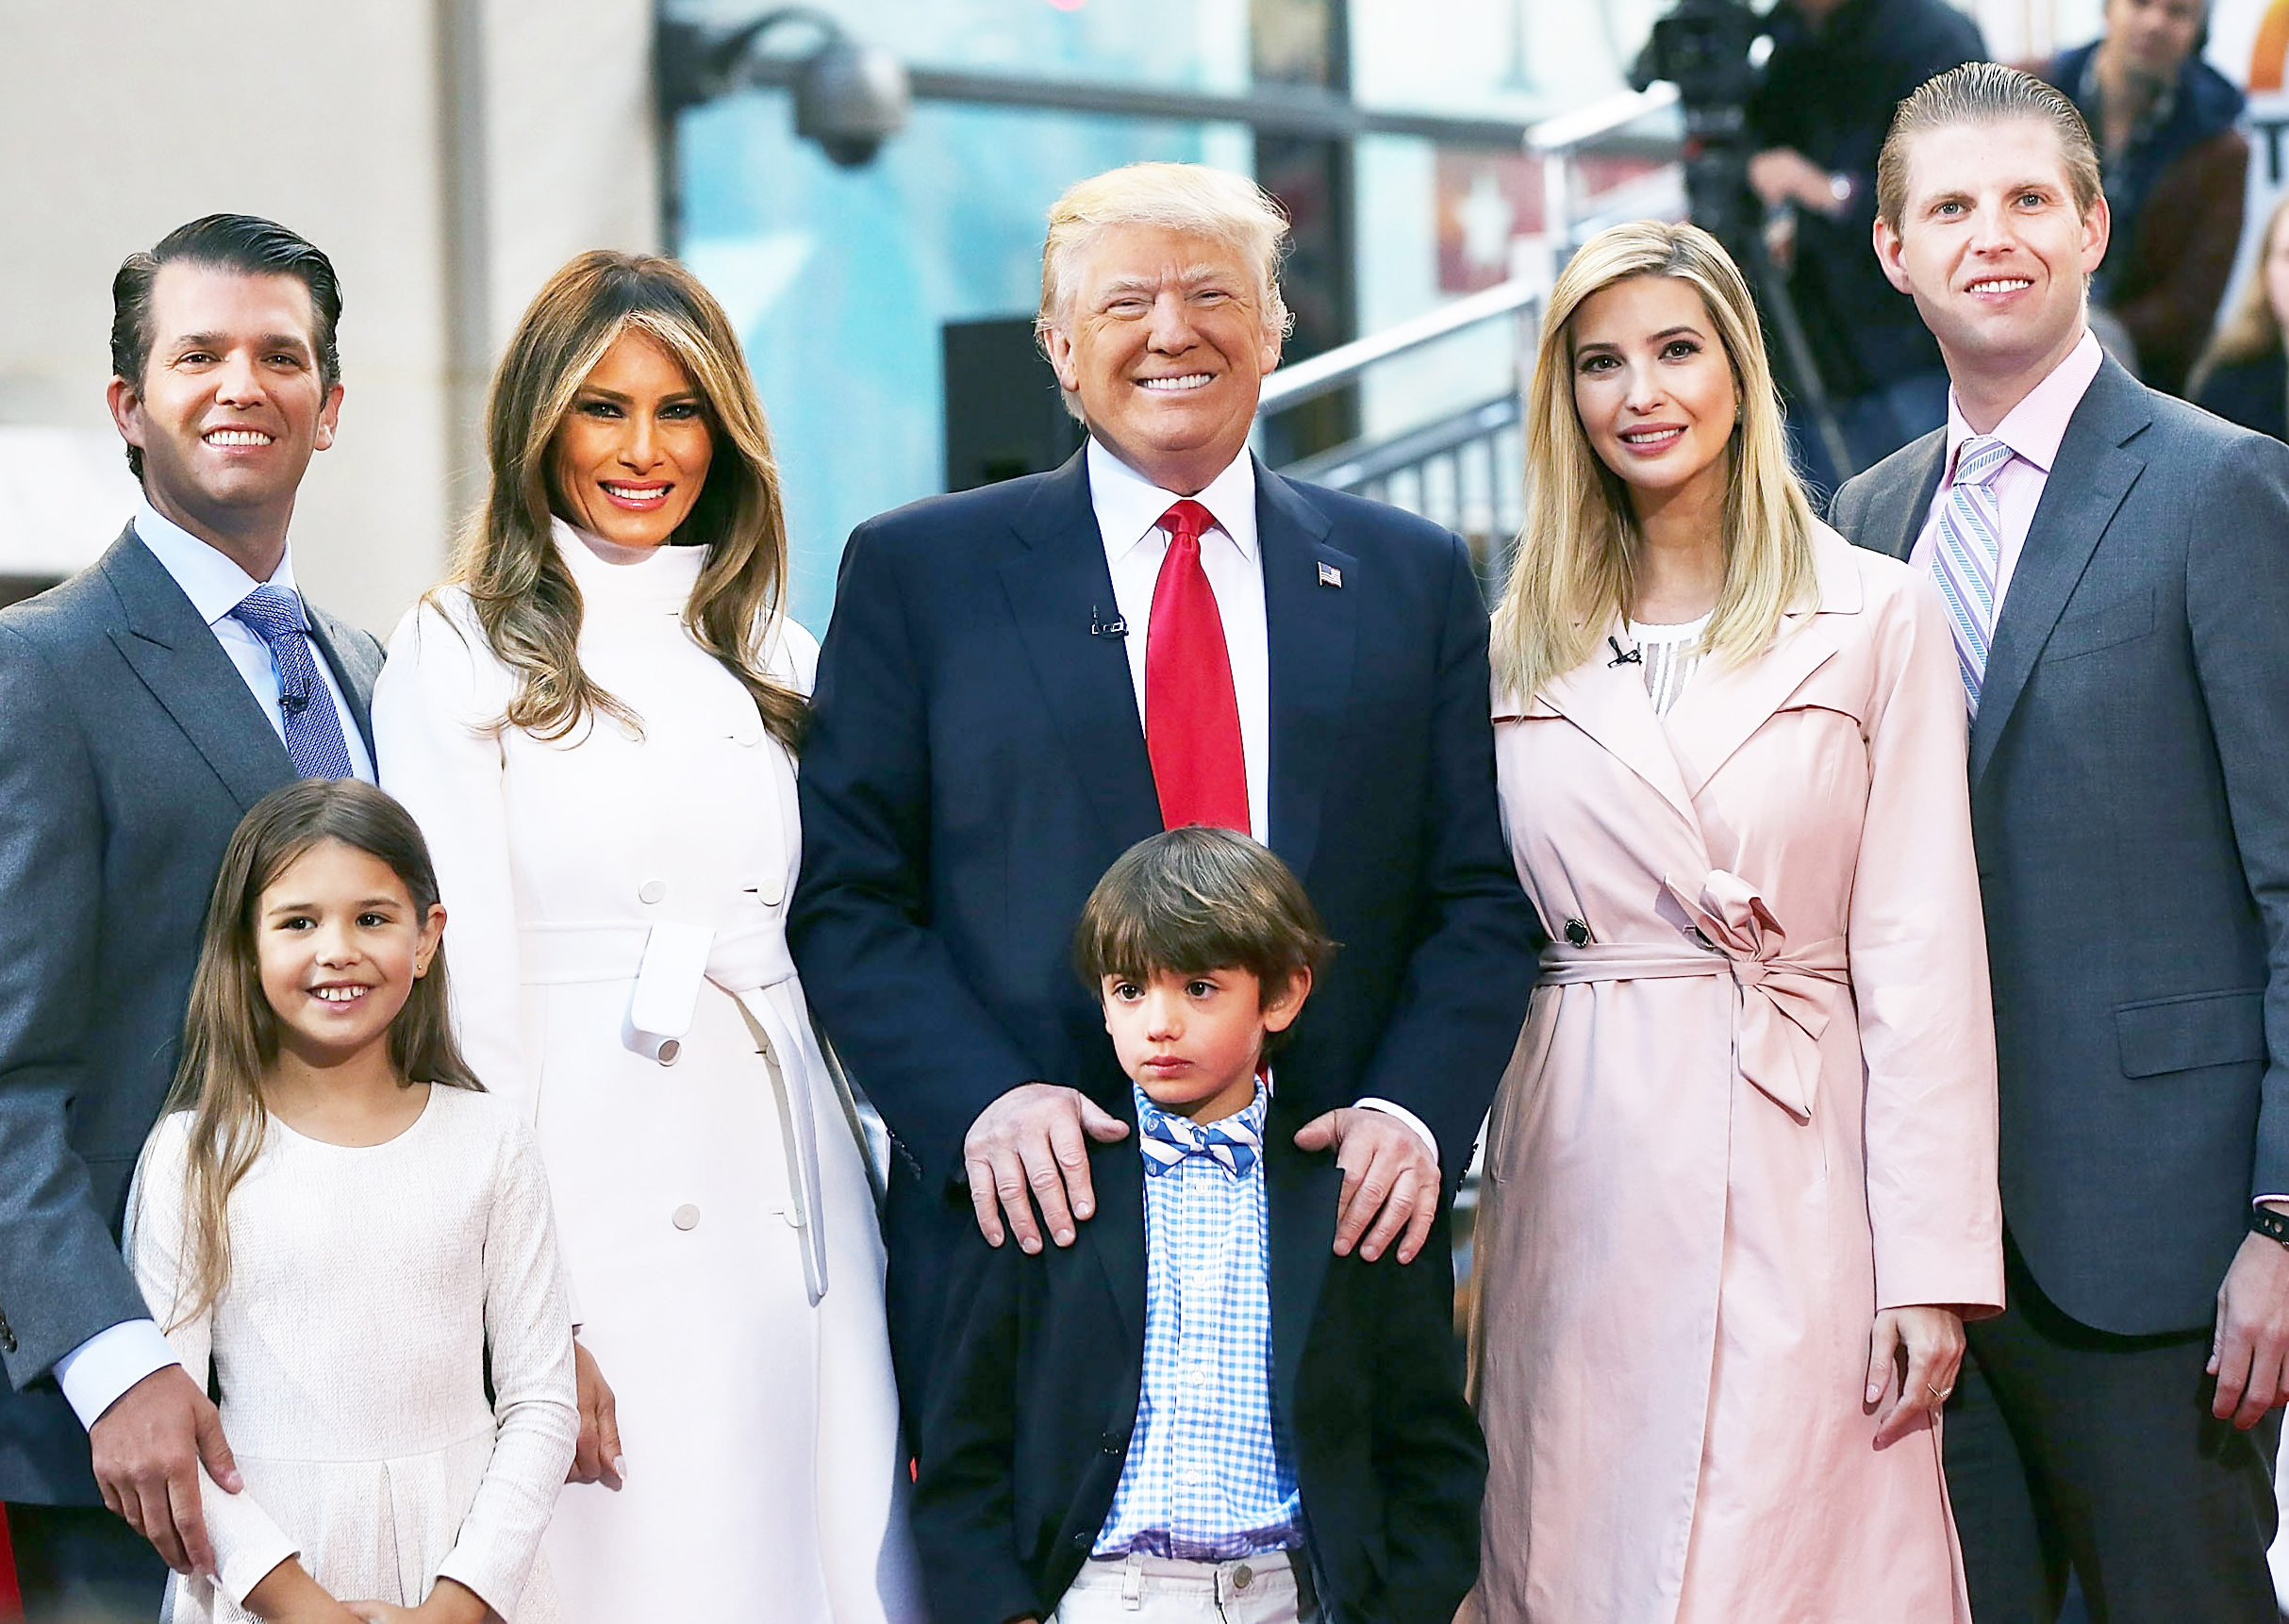 Donald Trump stands with his wife Melania Trump (center left) and from right: Eric Trump, Ivanka Trump, Donald Trump Jr. and Tiffany Trump. In the front row are Kai Trump and Donald Trump III, children of Donald Trump Jr. on April 21, 2016 in New York City.